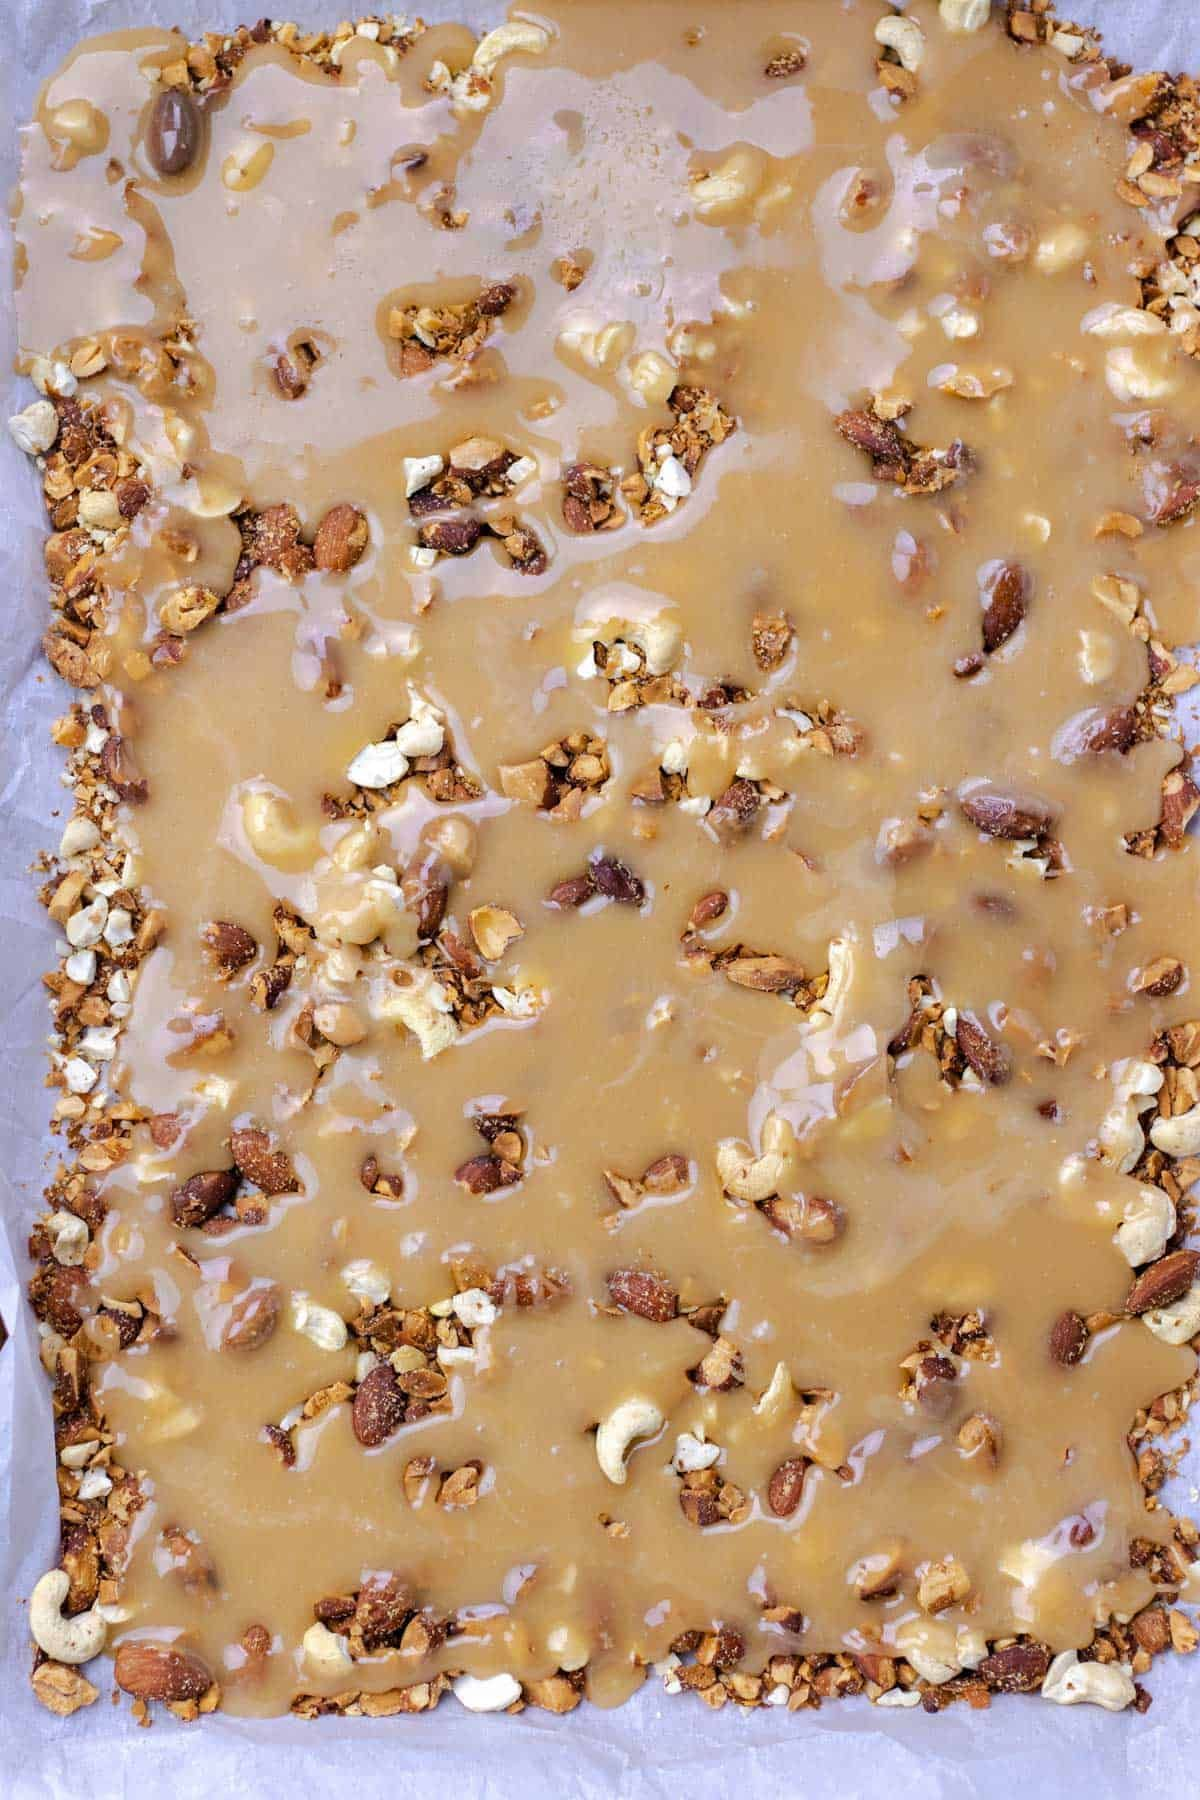 Photo of Almond & Cashew Buttercrunch Toffee – Whipped It Up